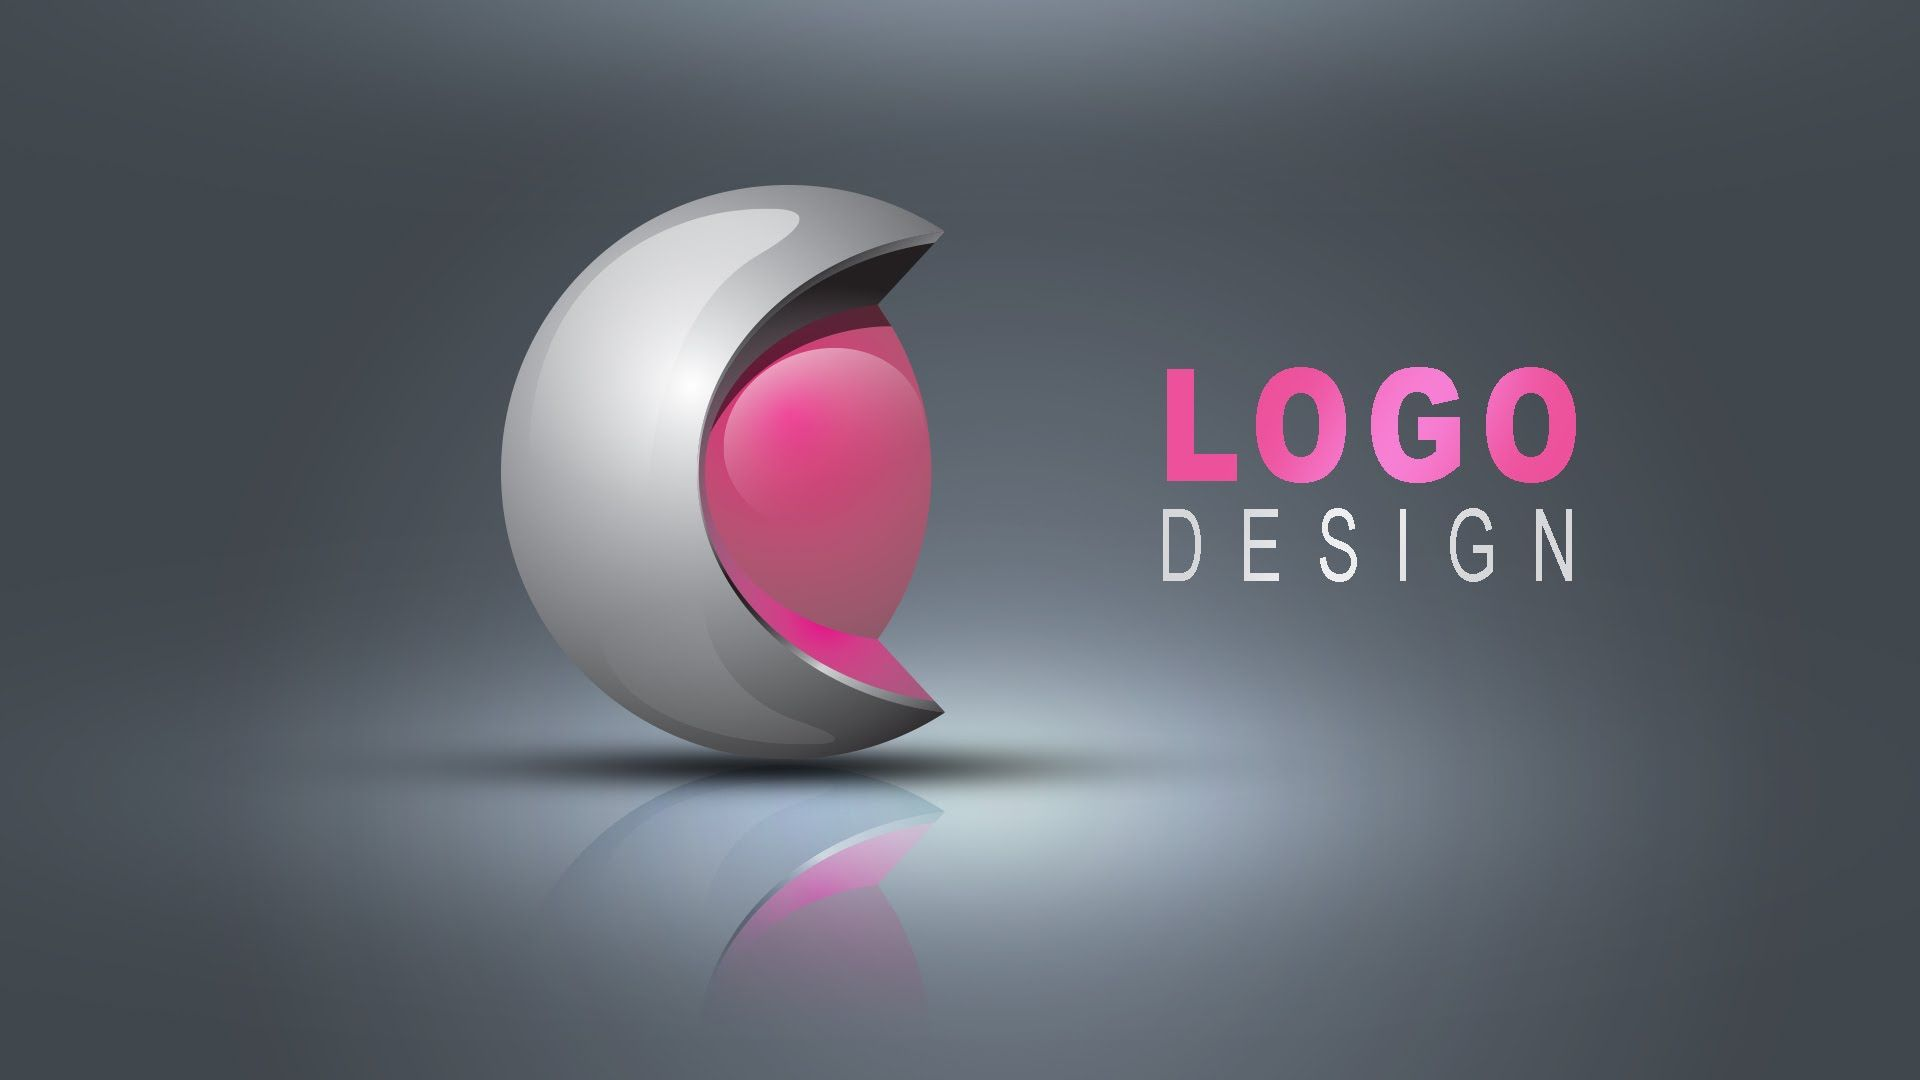 3d logo design in illustrator photoshop hindi urdo